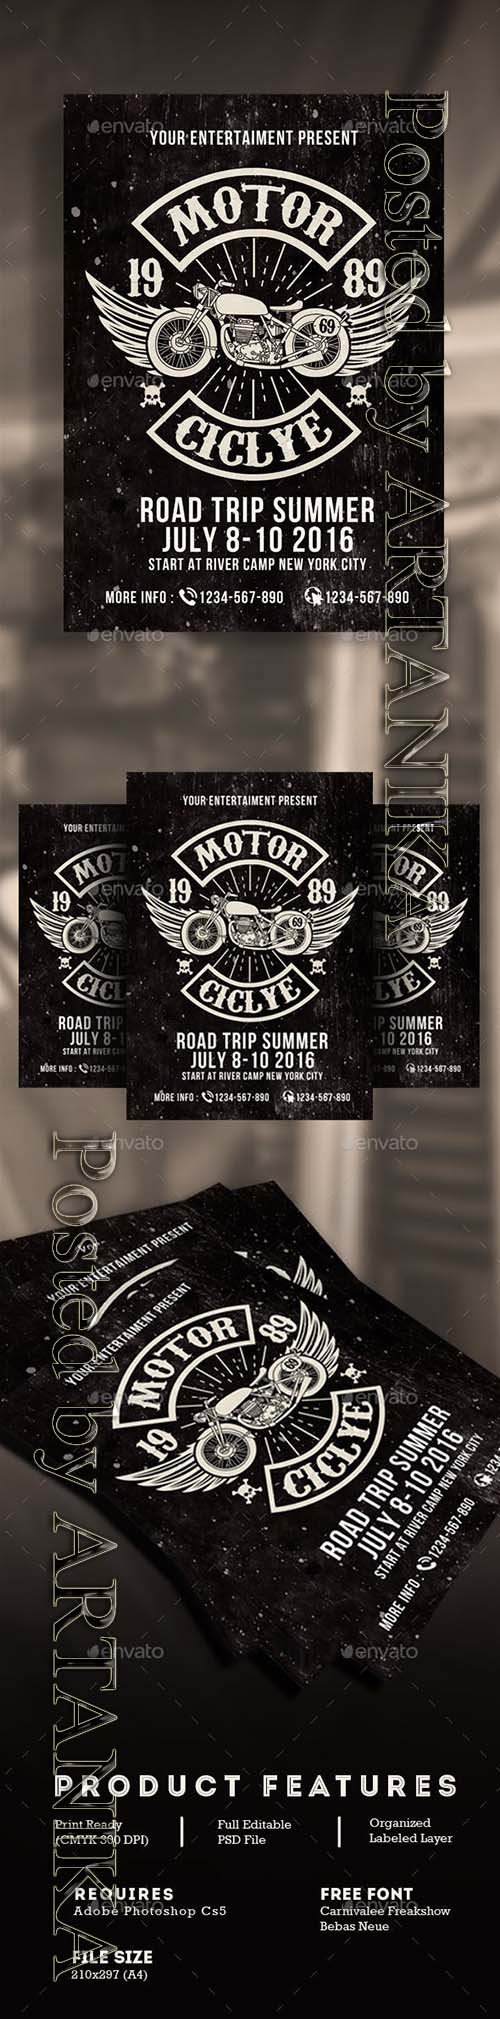 Graphicriver - Motorcycle Club Event 16792550